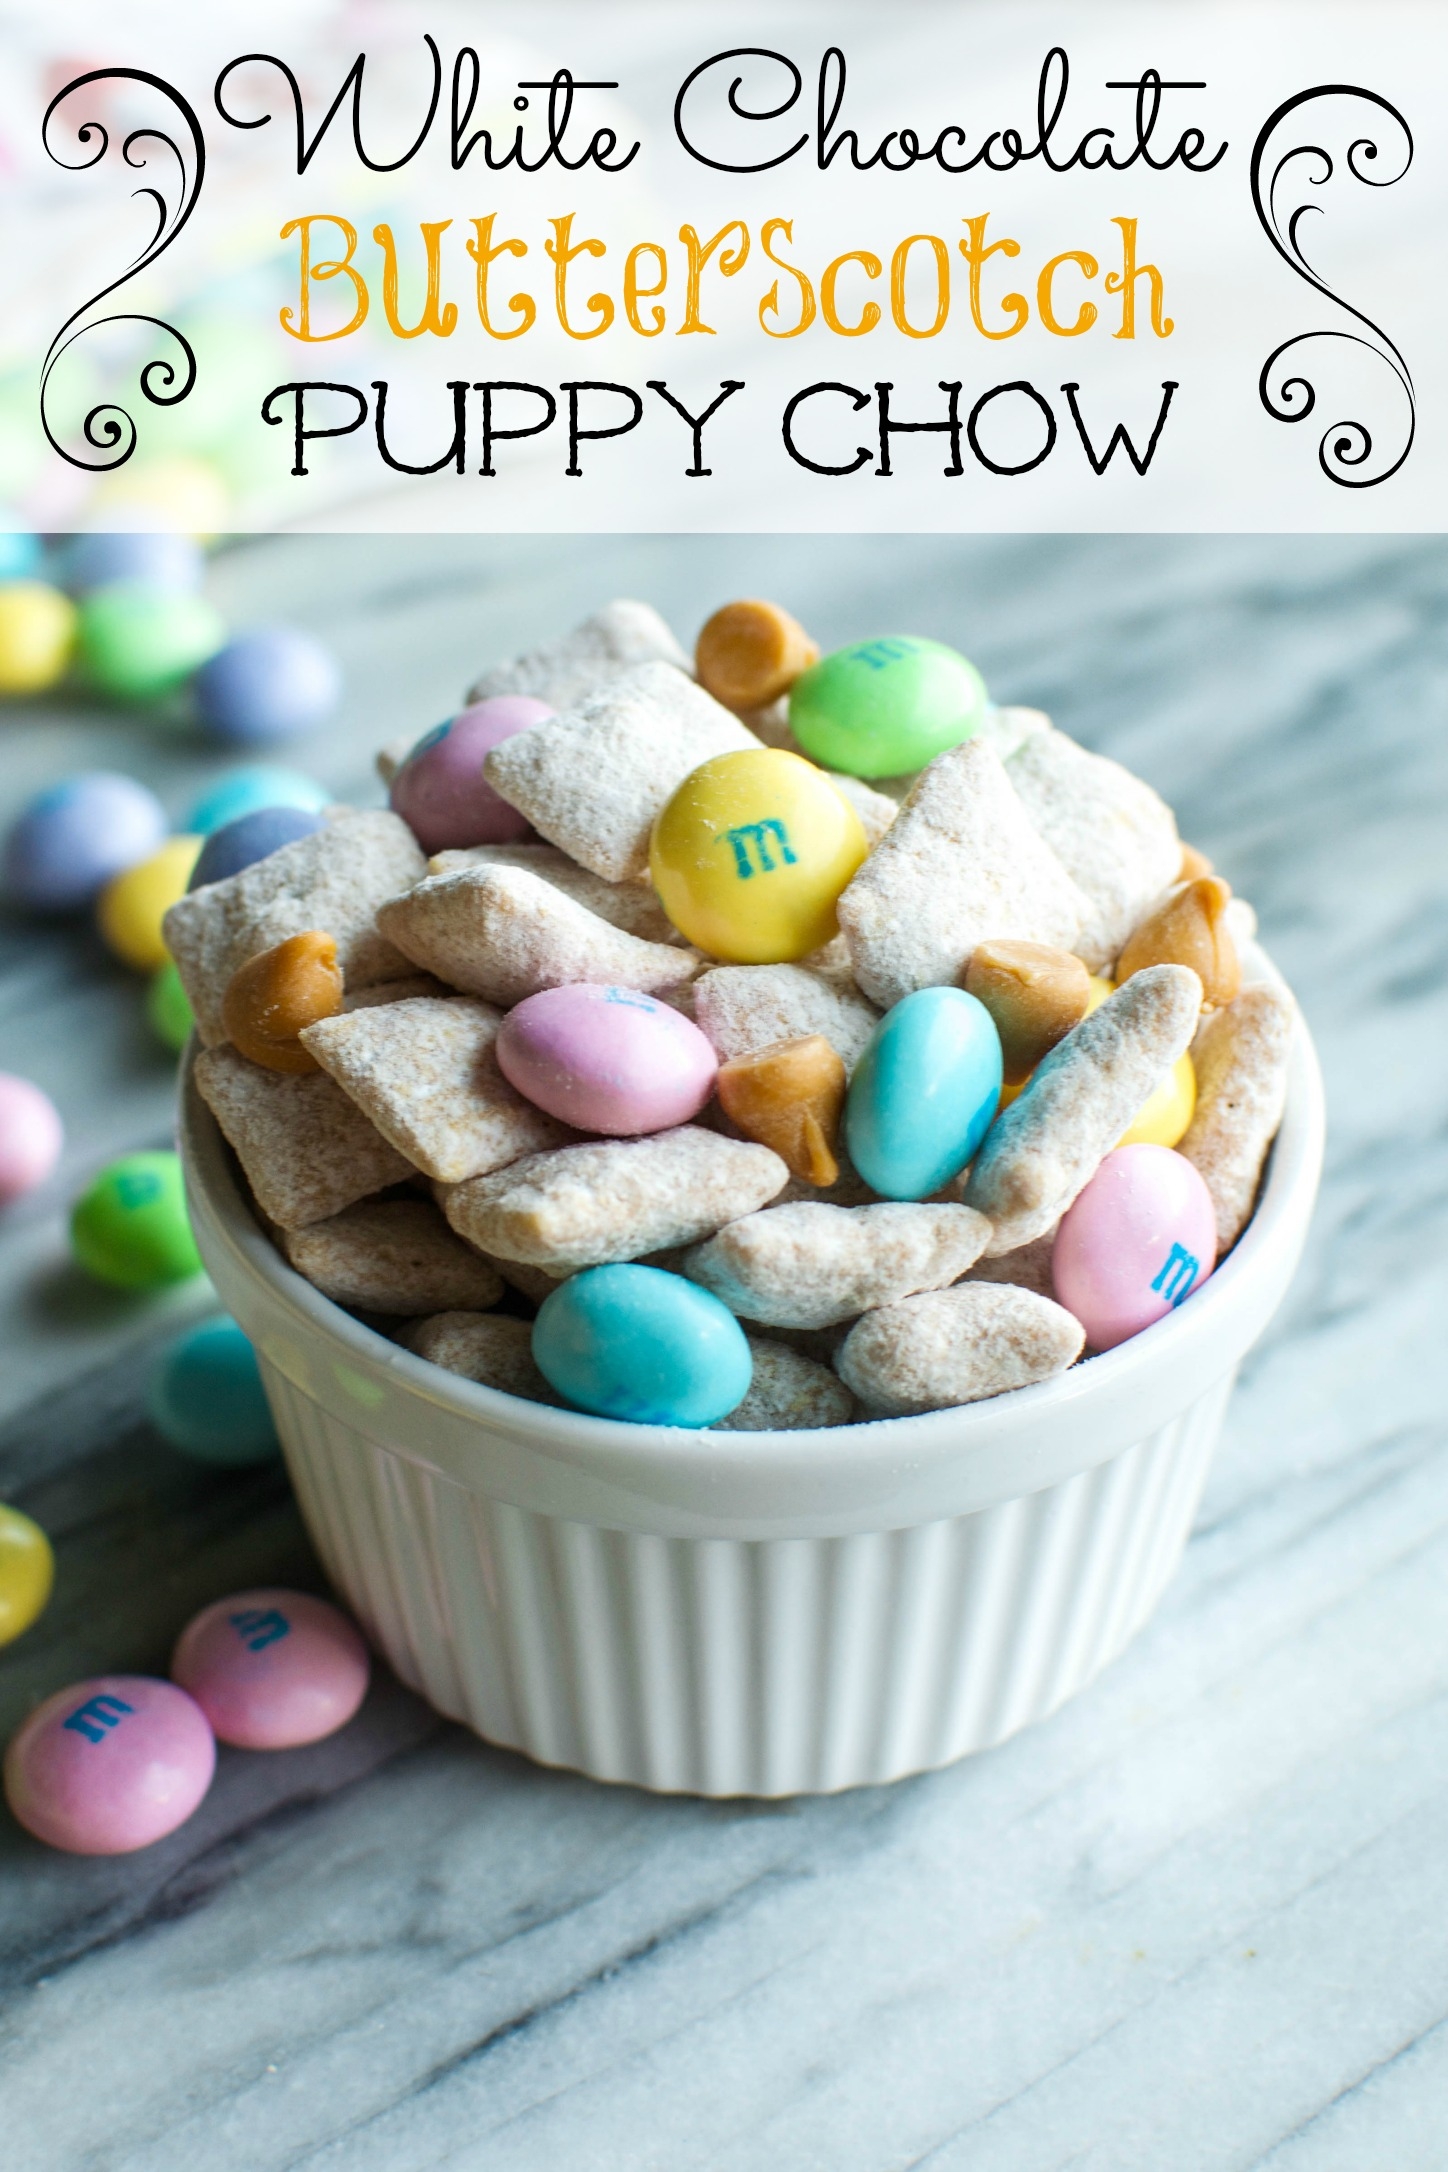 hope everybody had a very merry christmashanukahkwanzaevery single religious holiday thats celebrated in december - Christmas Puppy Chow